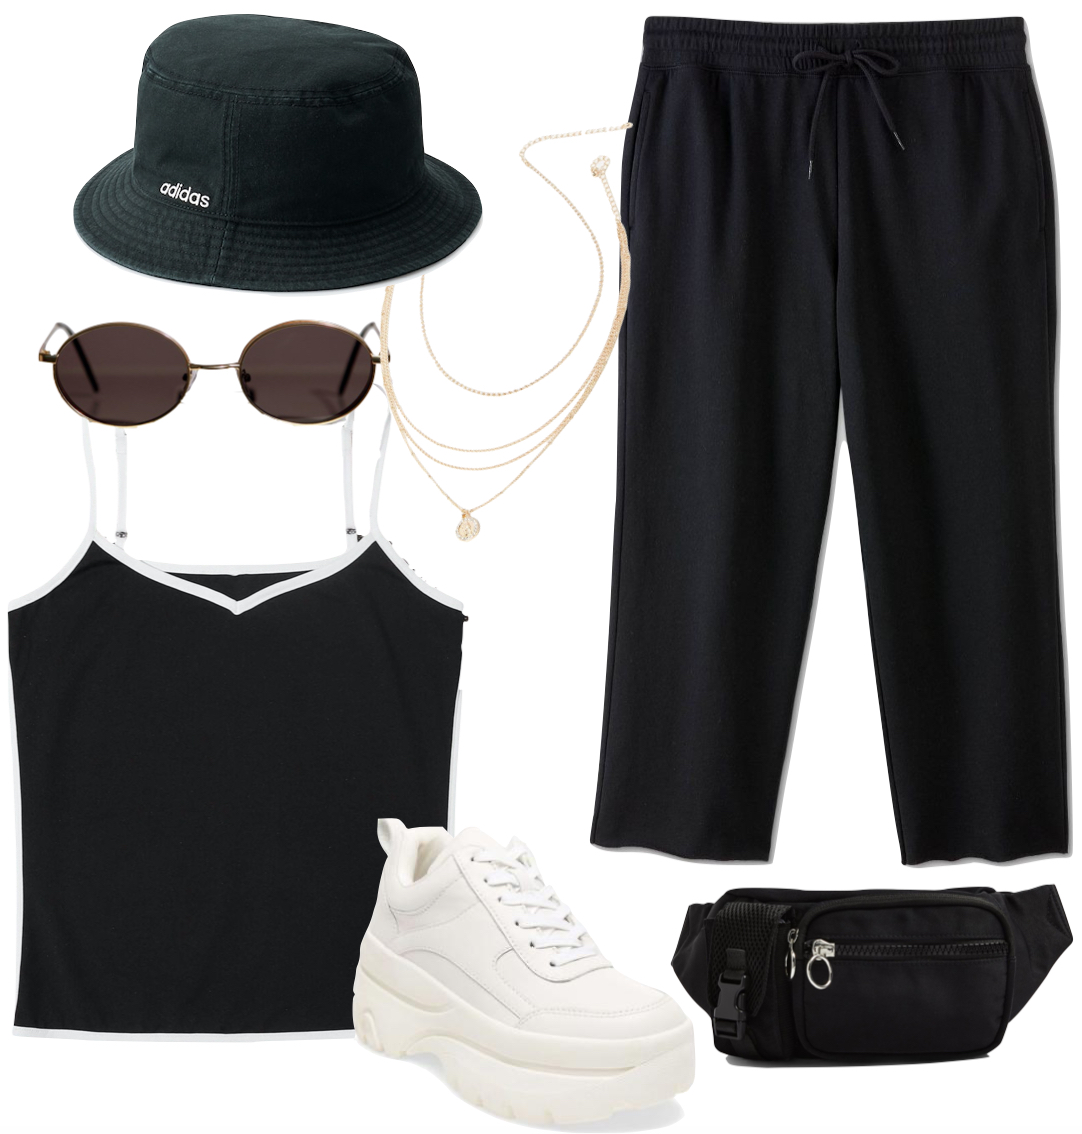 Vanessa Hudgens Outfit: cropped black sweatpants, black Adidas logo bucket hat, gold layered necklace, oval sunglasses, black and white contrast trim tank top, black belt bag and chunky white platform sneakers